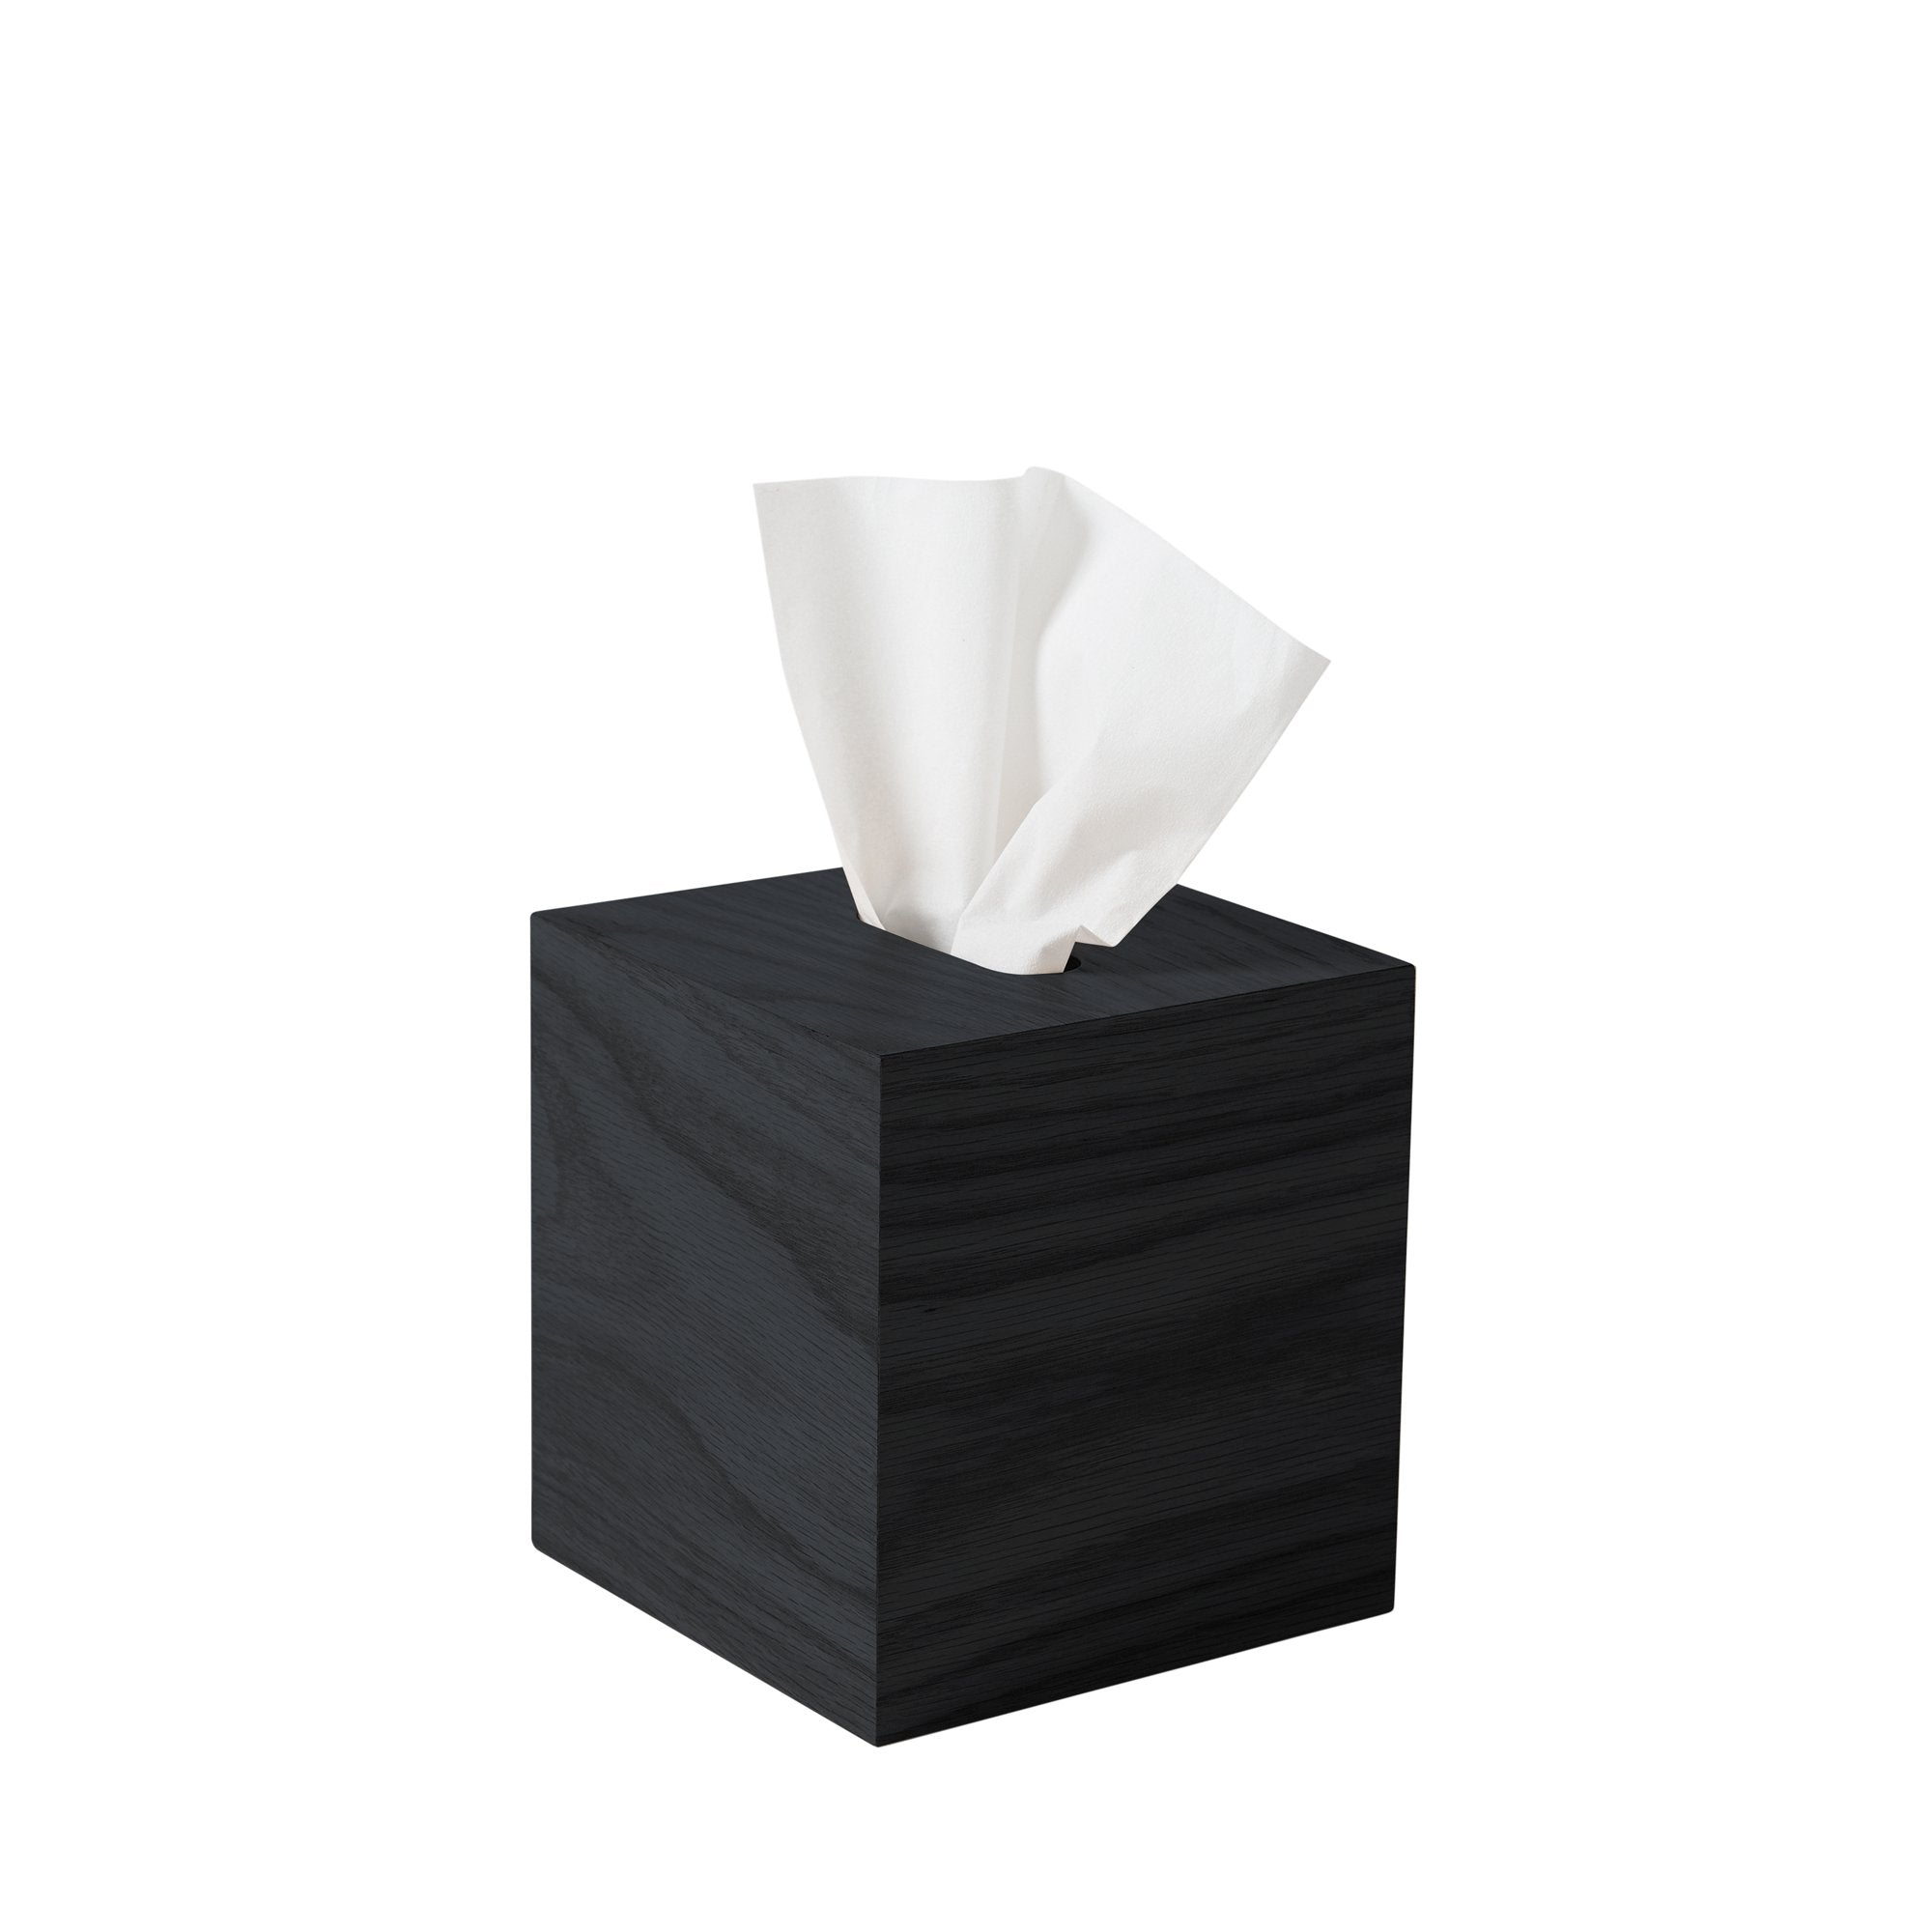 Oku Tissue Box - Square